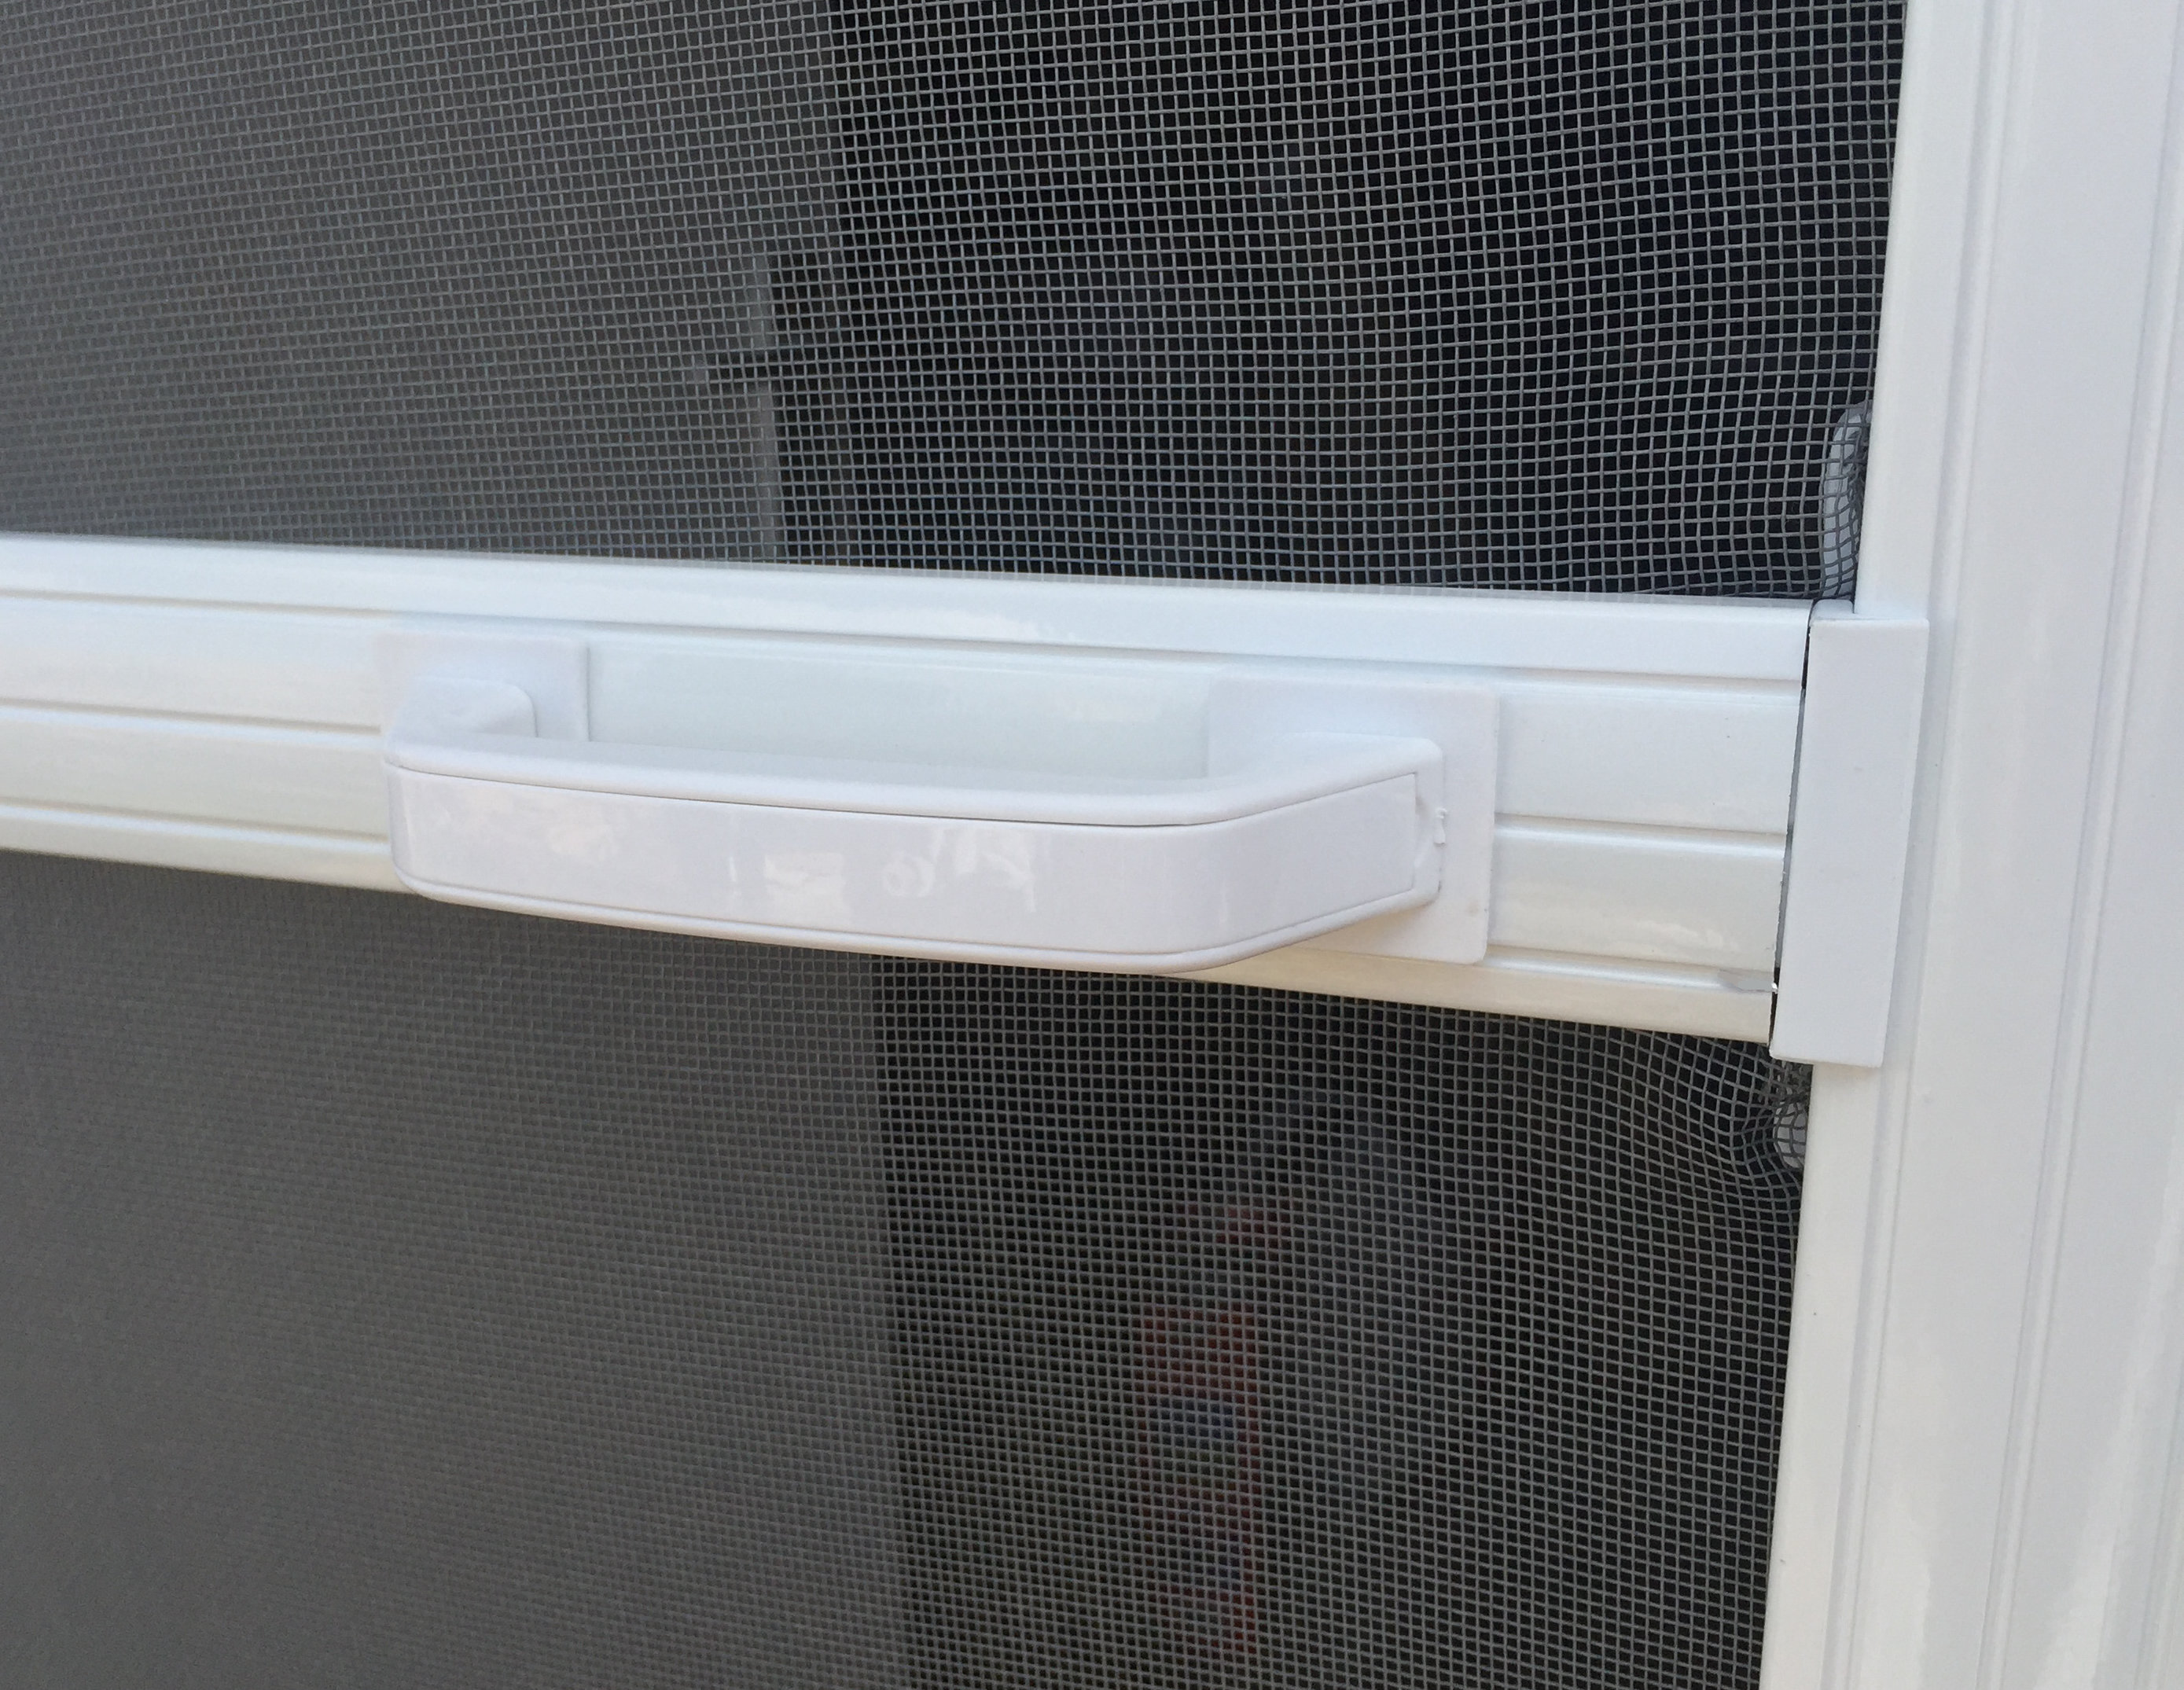 Handles on both sides of the door